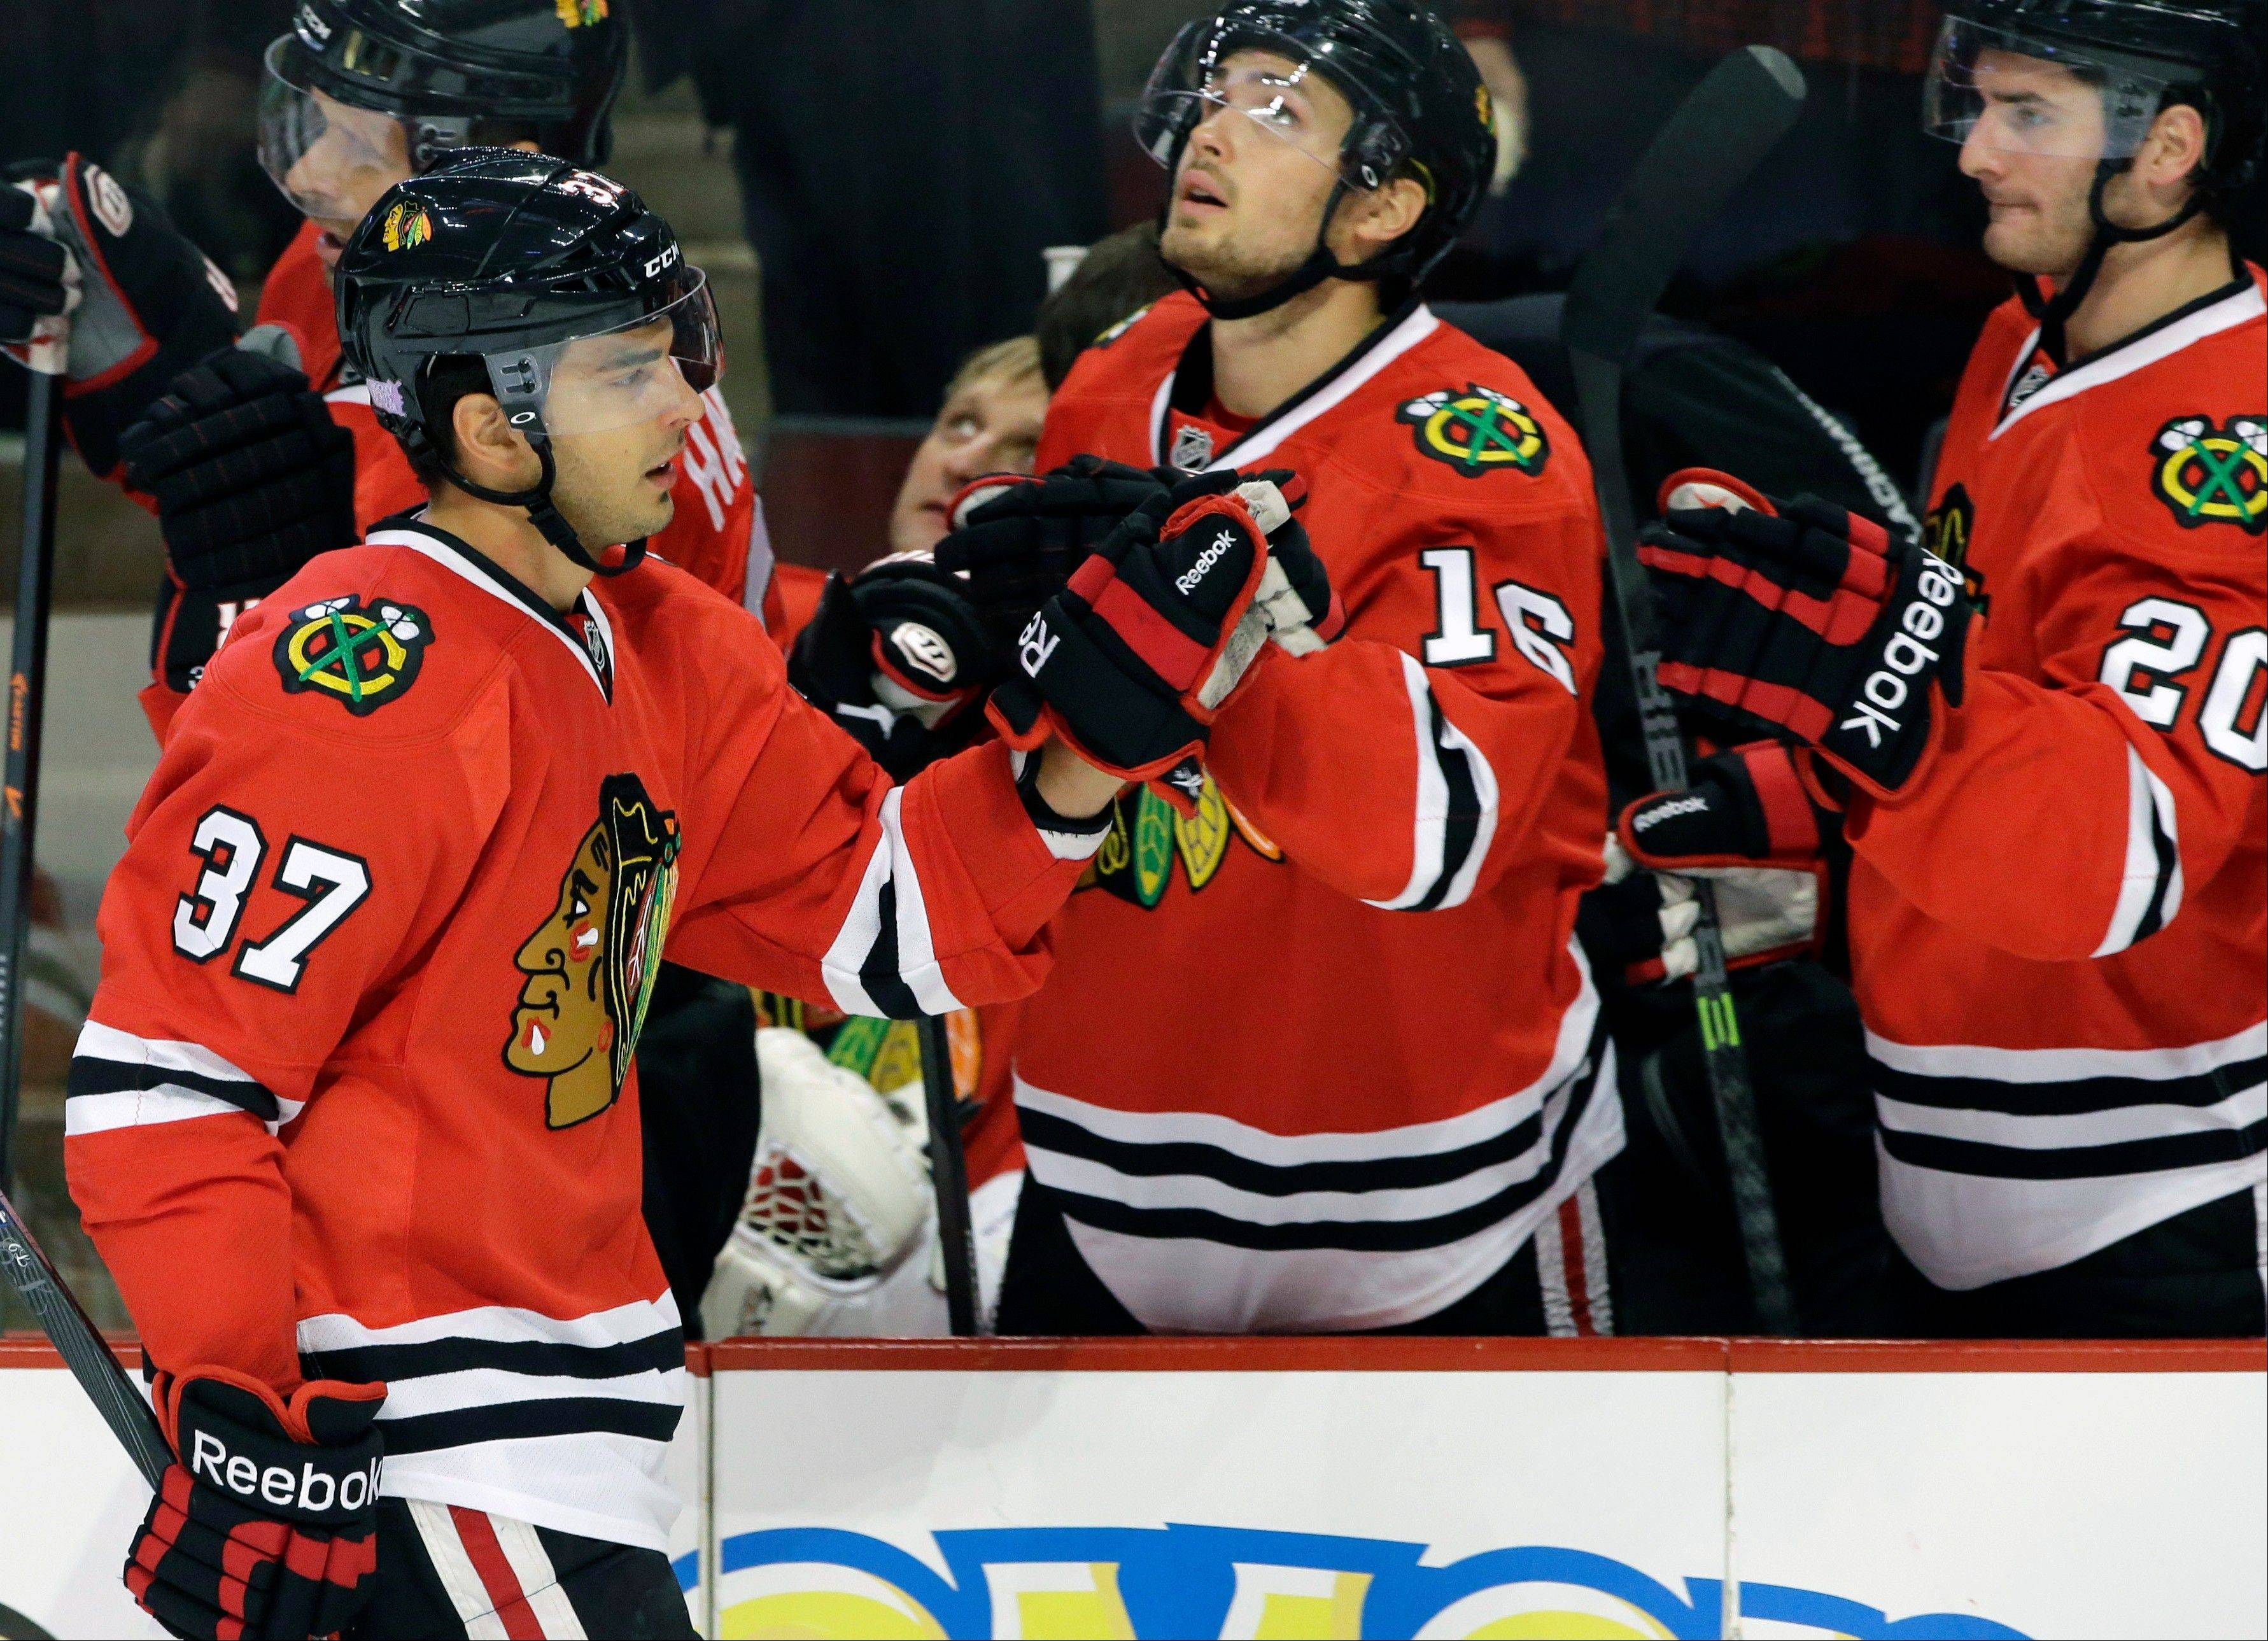 Brandon Pirri (37) celebrates with teammates after scoring against St. Louis last Thursday.